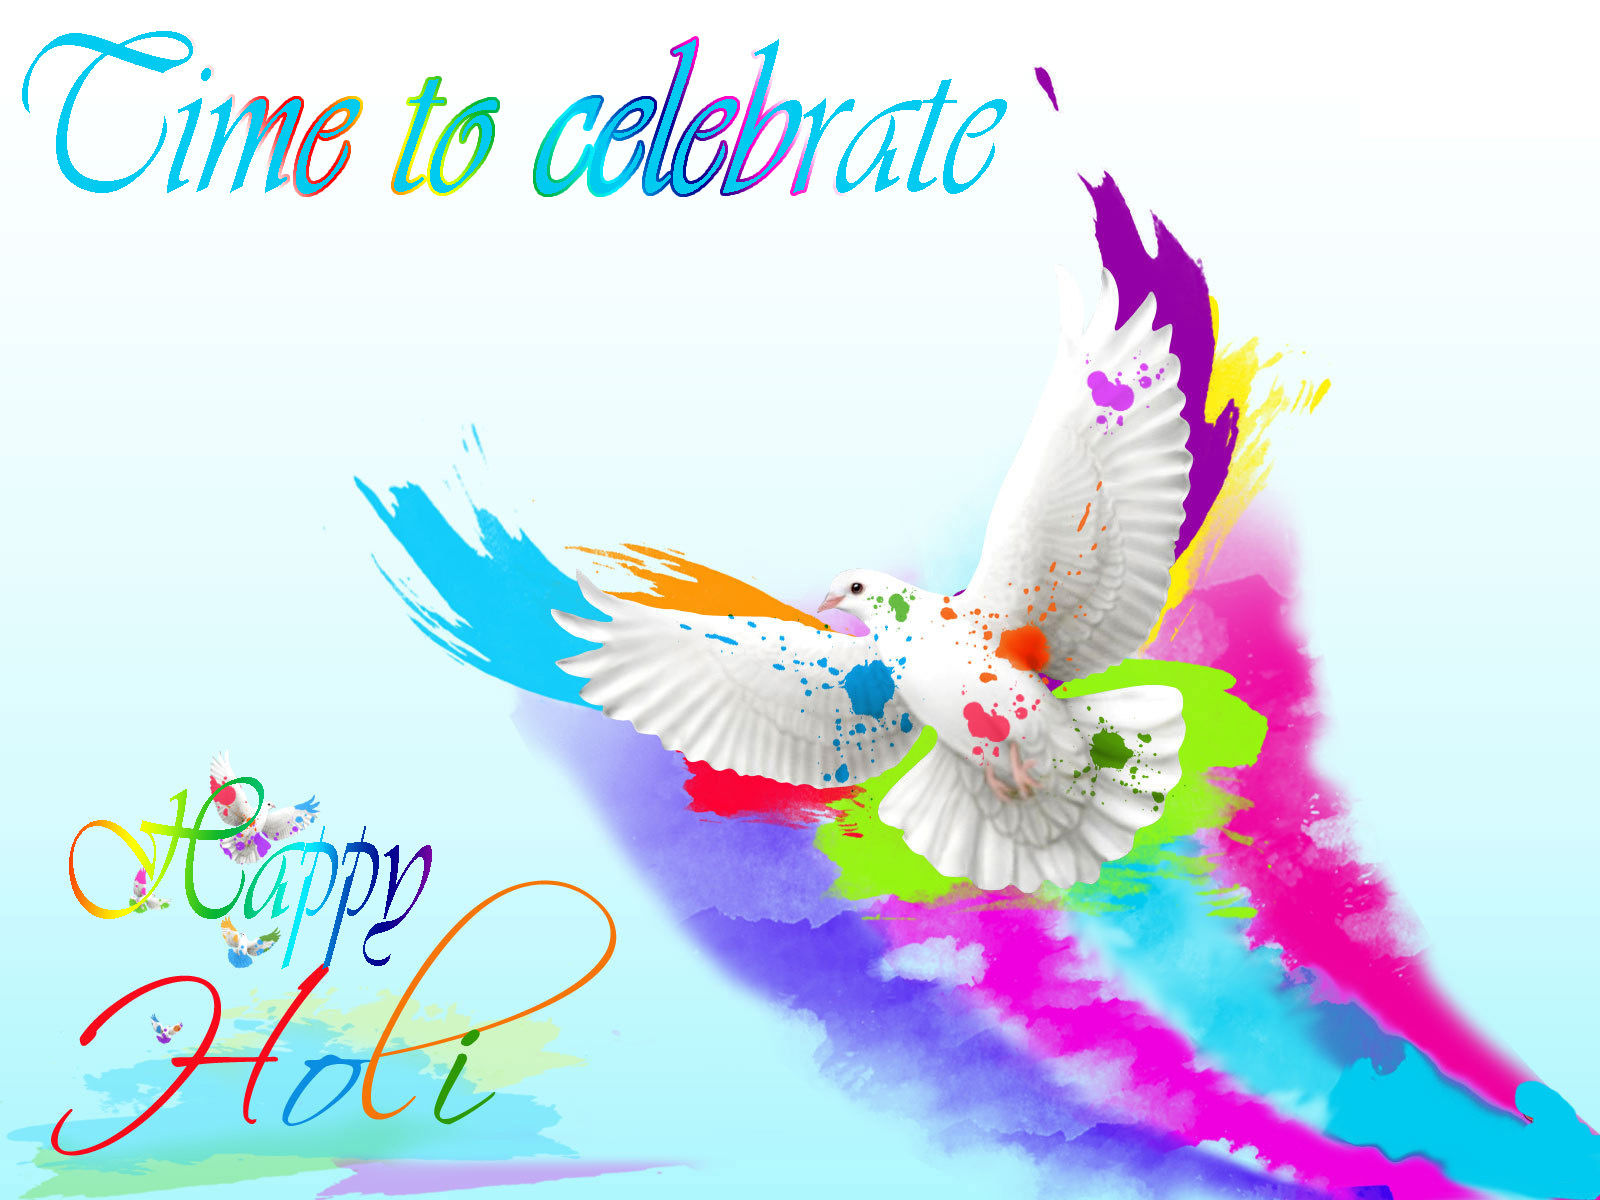 Happy-Holi-Greeting-Cards-1